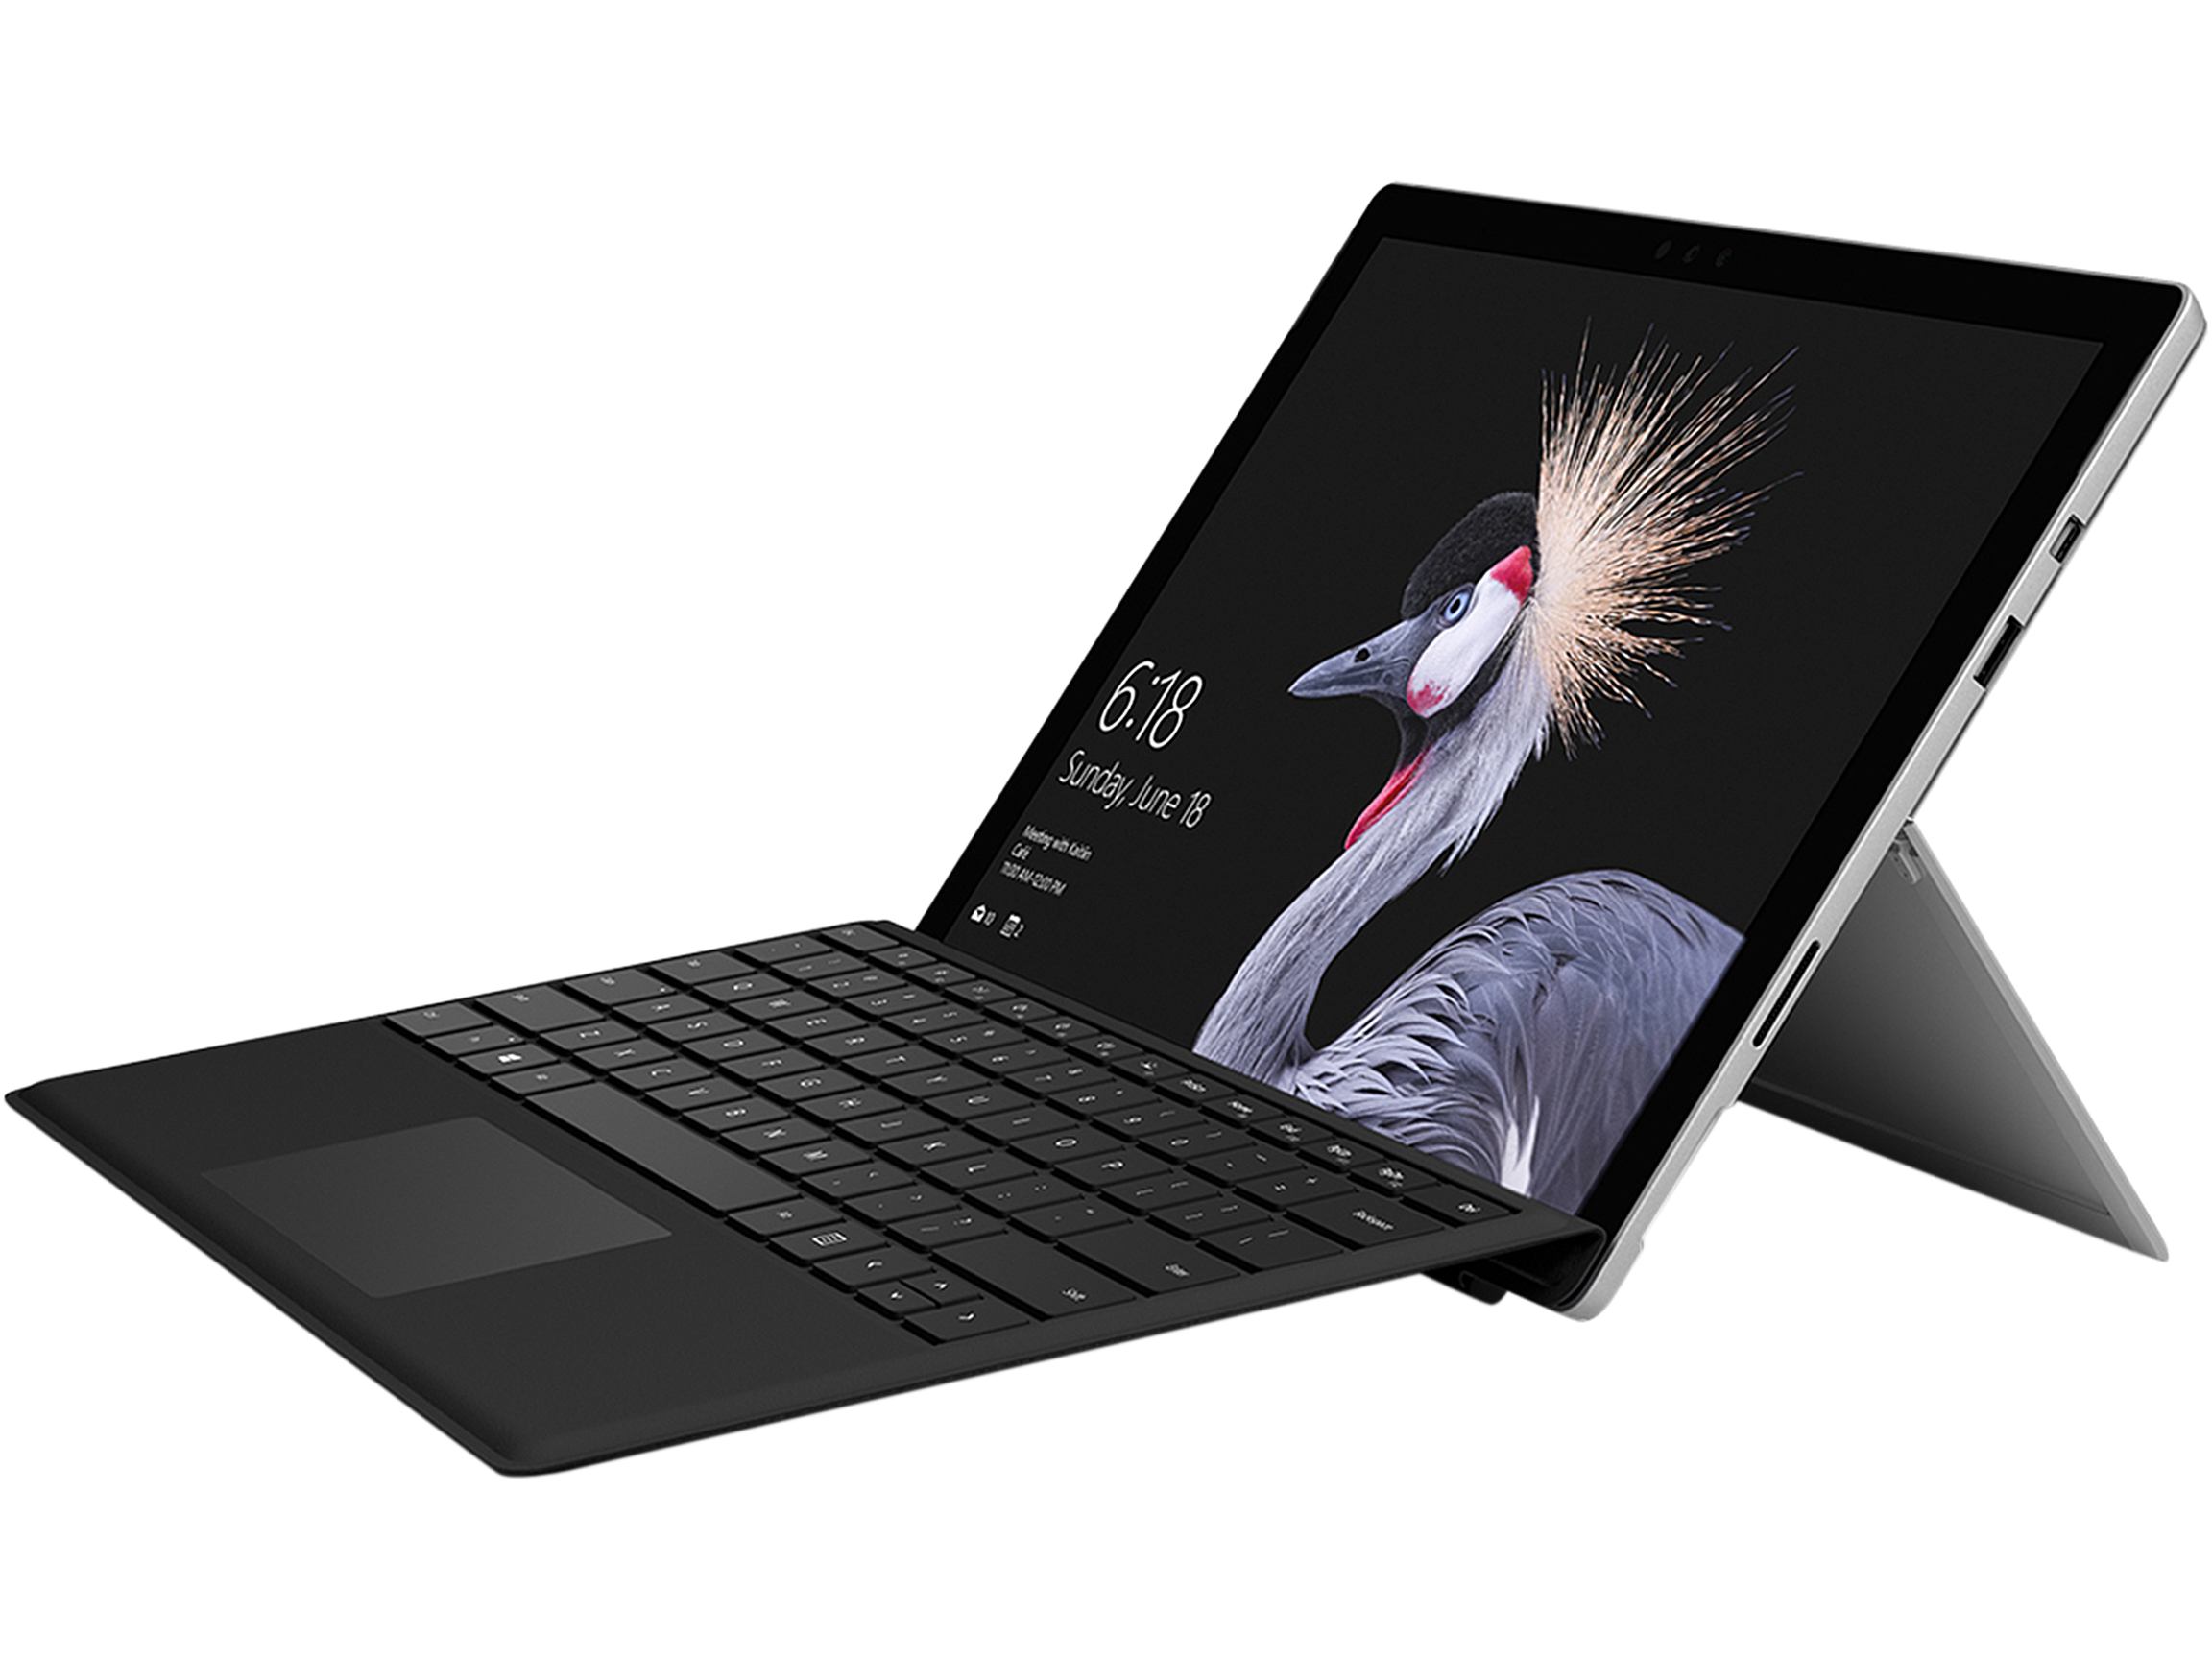 "Refurbished: Microsoft Surface 3 7GM-00001 Intel Atom x7-Z8700 (1.60 GHz) 4 GB LPDDR3 Memory 128 GB SSD 10.8"" 1920 x 1280 Tablet PC - Tablets Windows 8.1 Pro 64-Bit Silver"